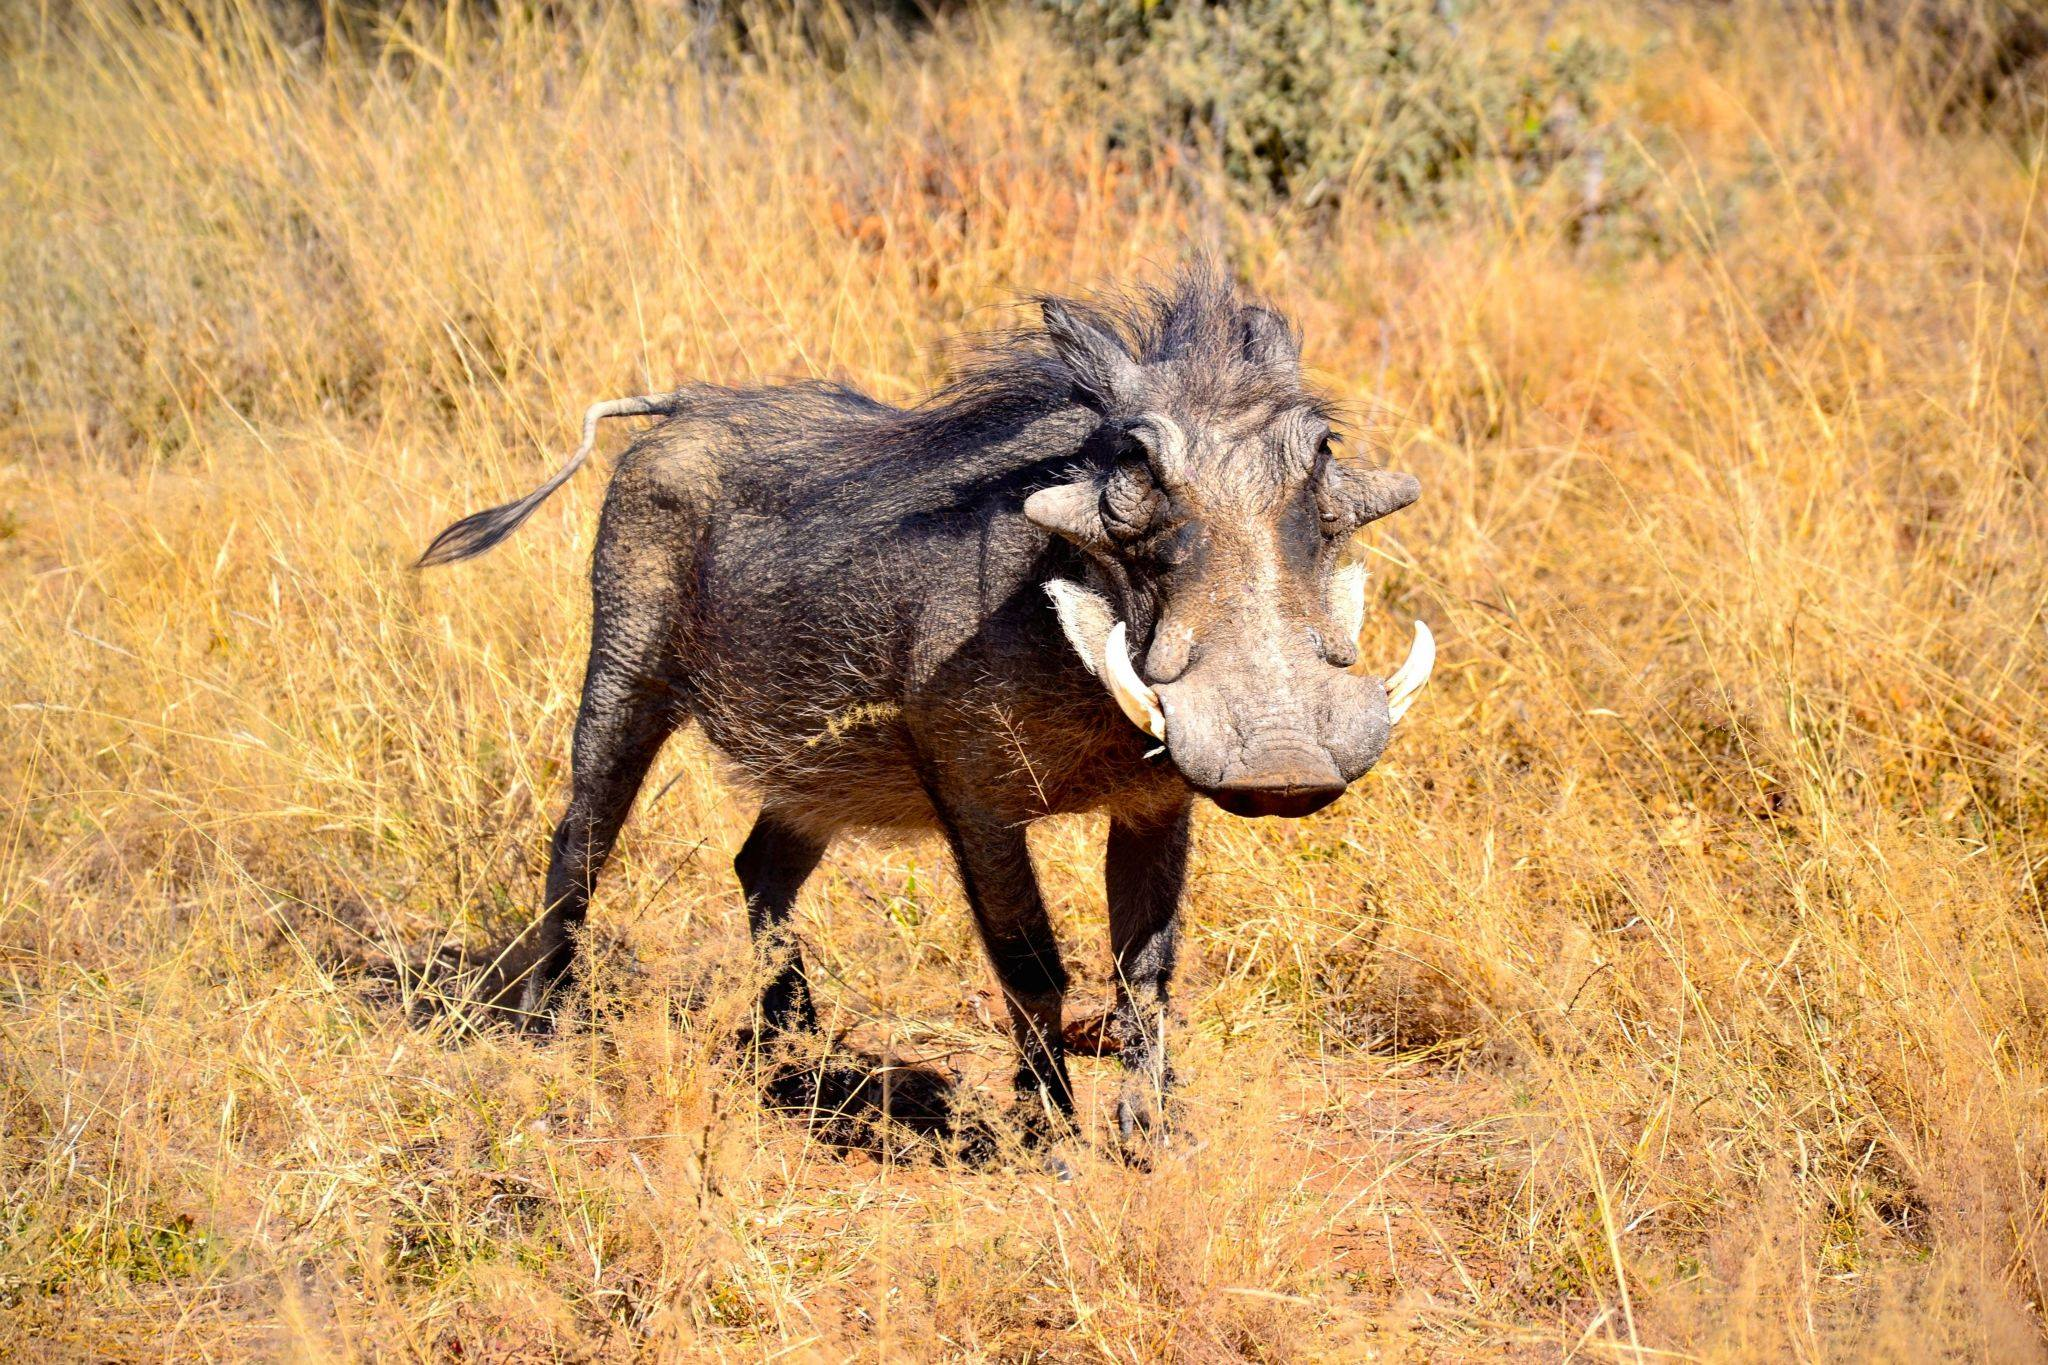 Pumba, the warthog. Photo ©Thomas Blomme